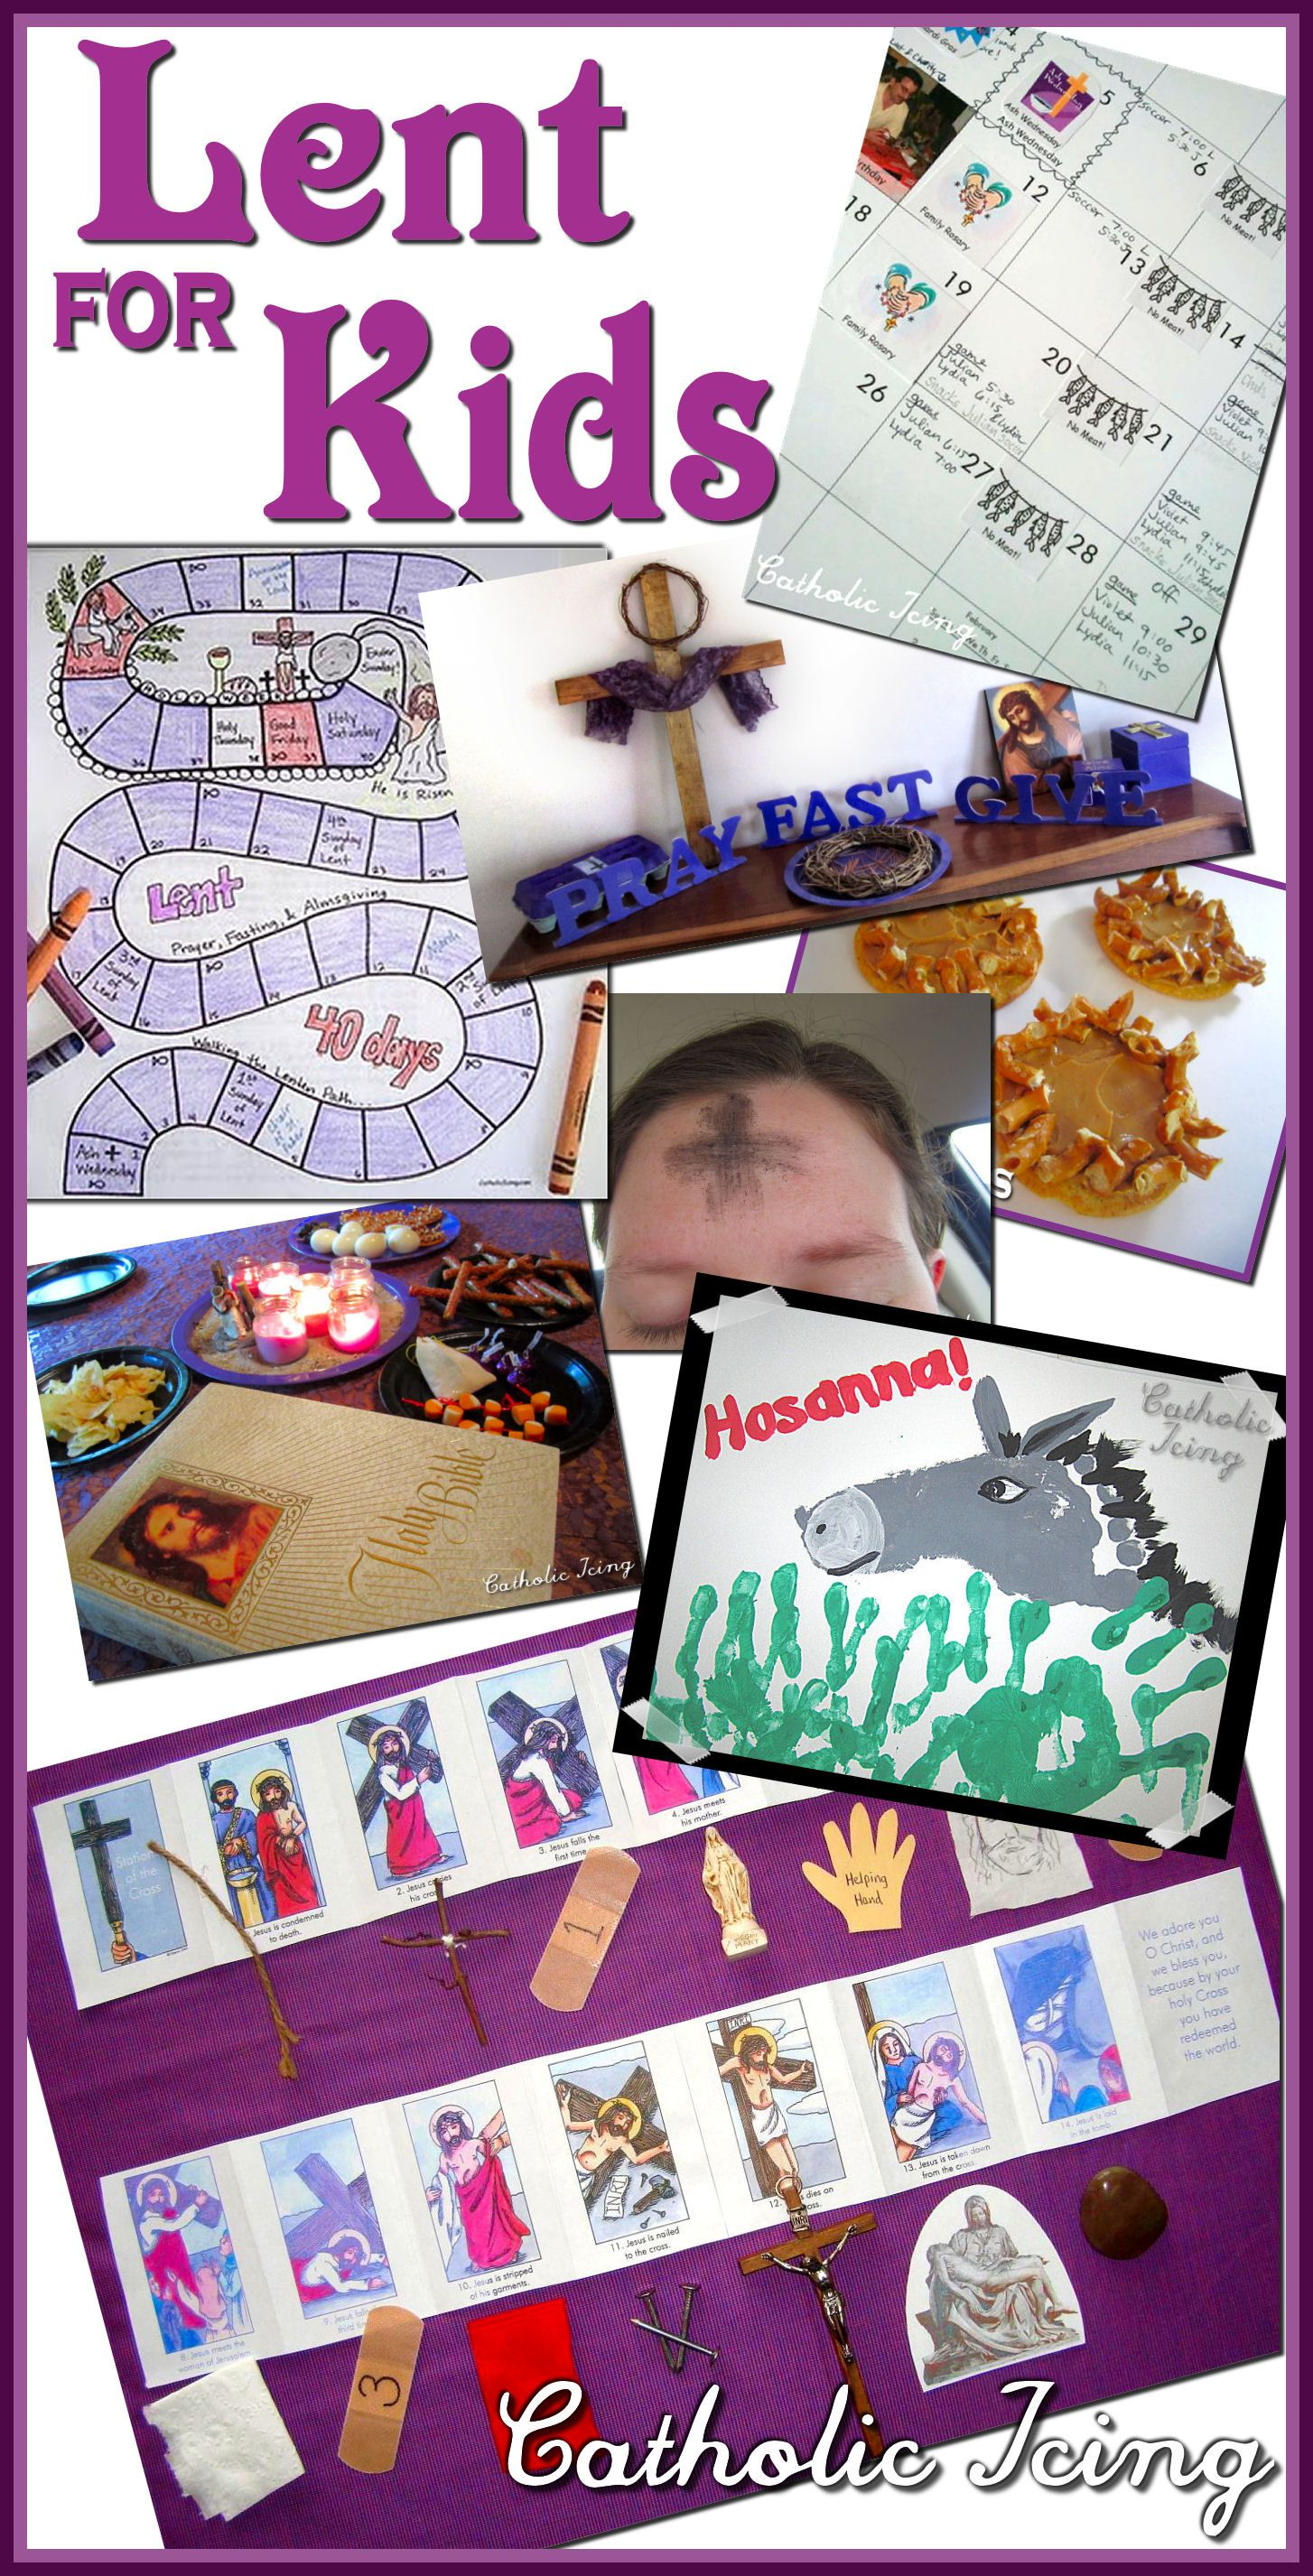 All The Links You Need For Lent In One Easy Place Printables Crafts Activities And More From